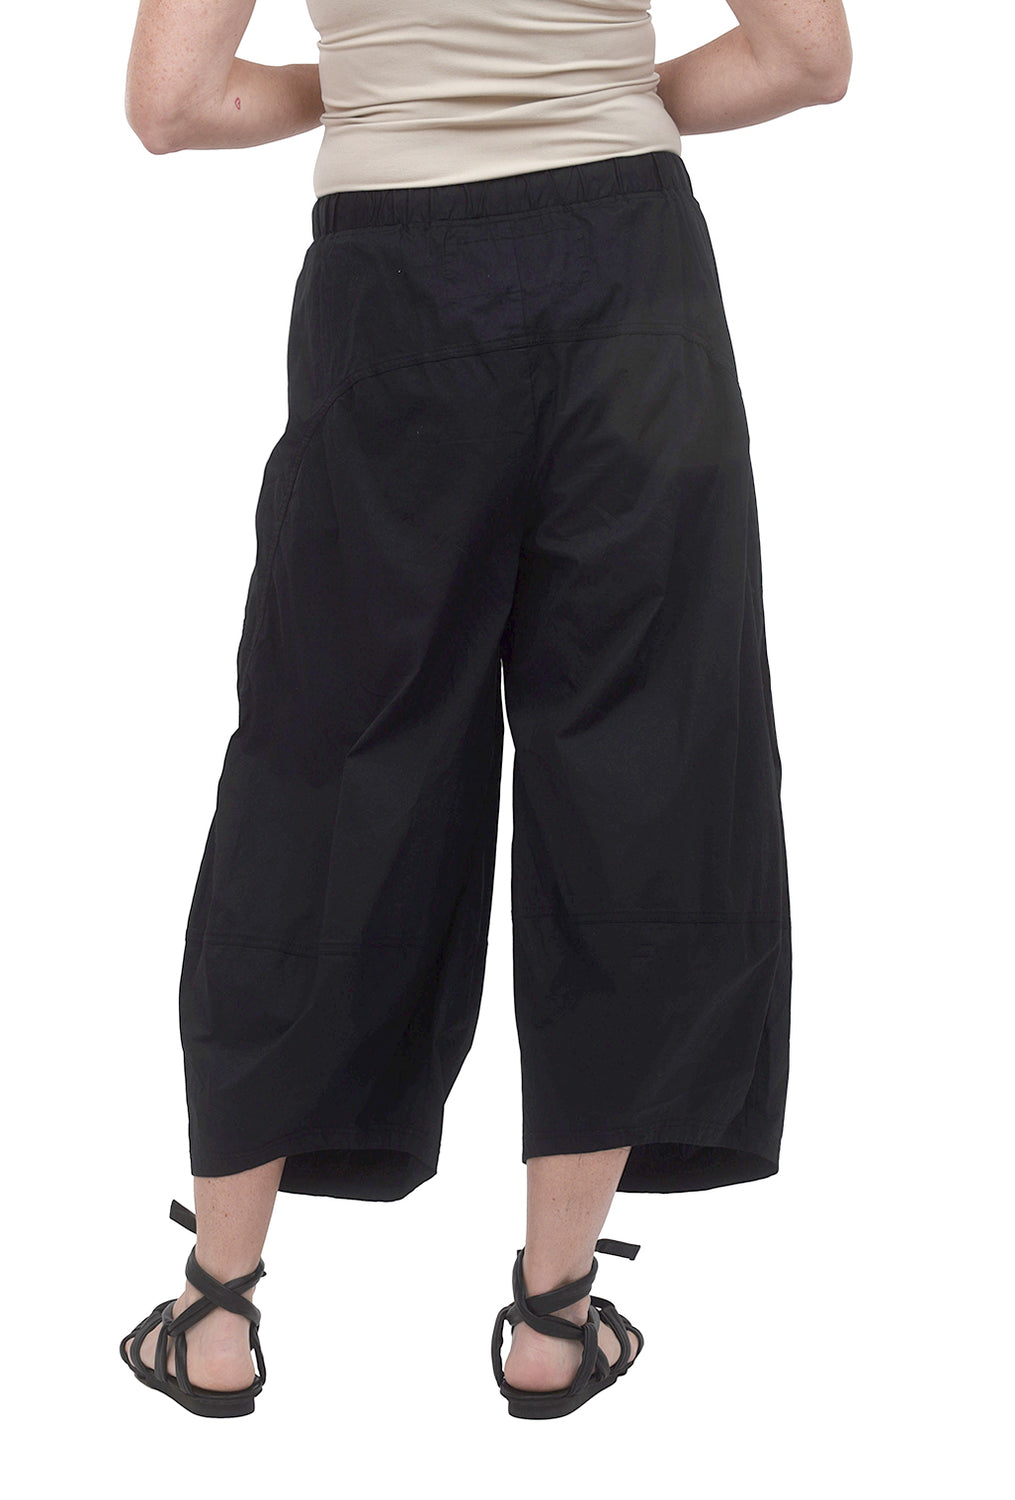 Rundholz Black Label Poplin Stretch Lantern Pant, Black